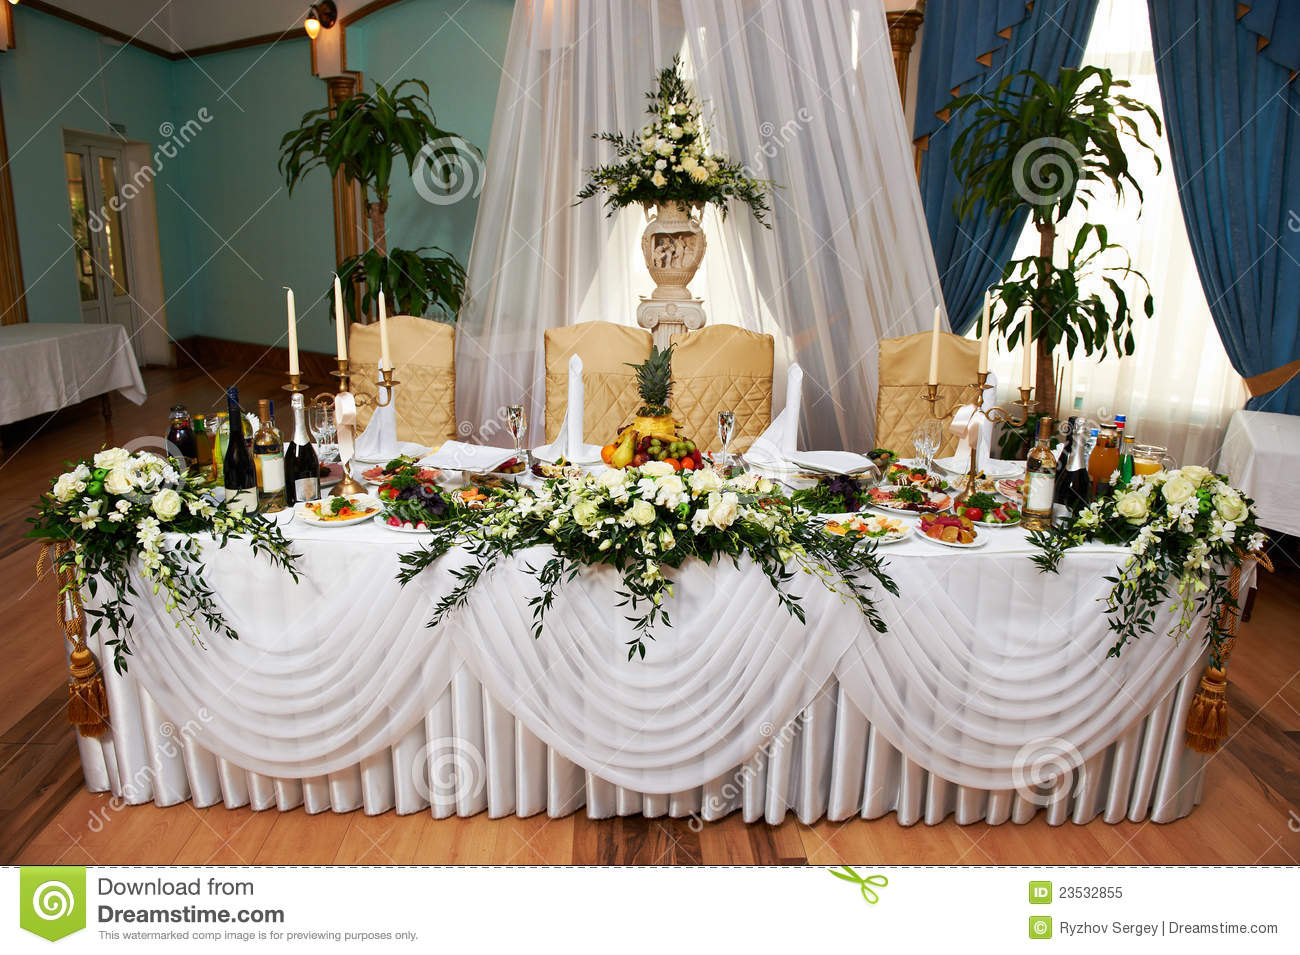 Genial Wedding Table For The Bride And Groom